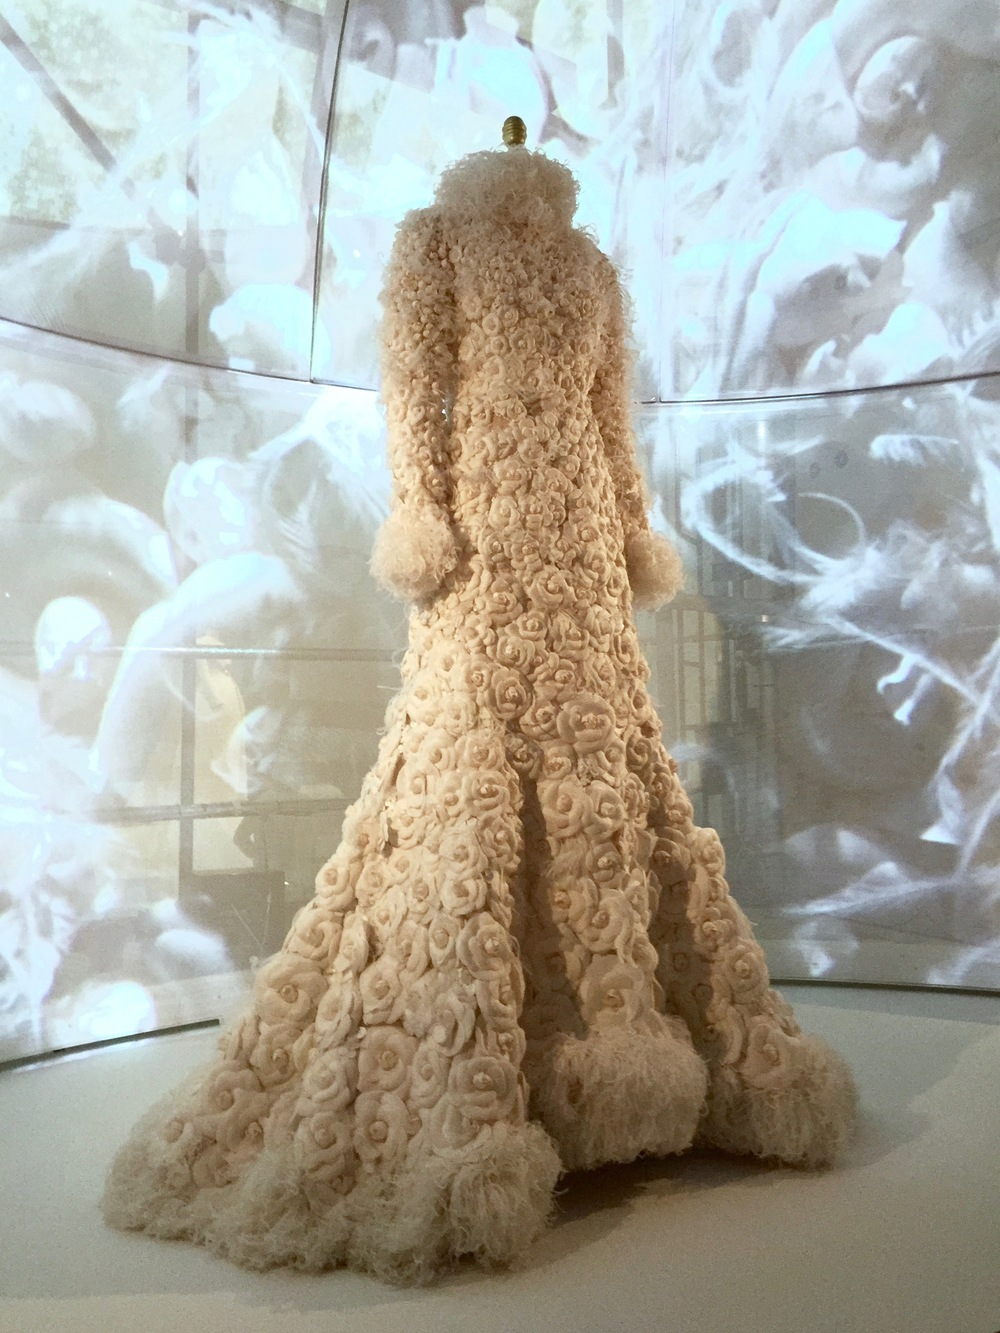 "HOUSE OF CHANEL, Karl Lagerfeld WEDDING ENSEMBLE (back view), Autumn/Winter 2005-6, haute couture ""I covered it entirely in camellias.  It's like a giant bouquet.  Quite funny, no?  No one is working with flowers in this way."" - Karl Lagerfeld"